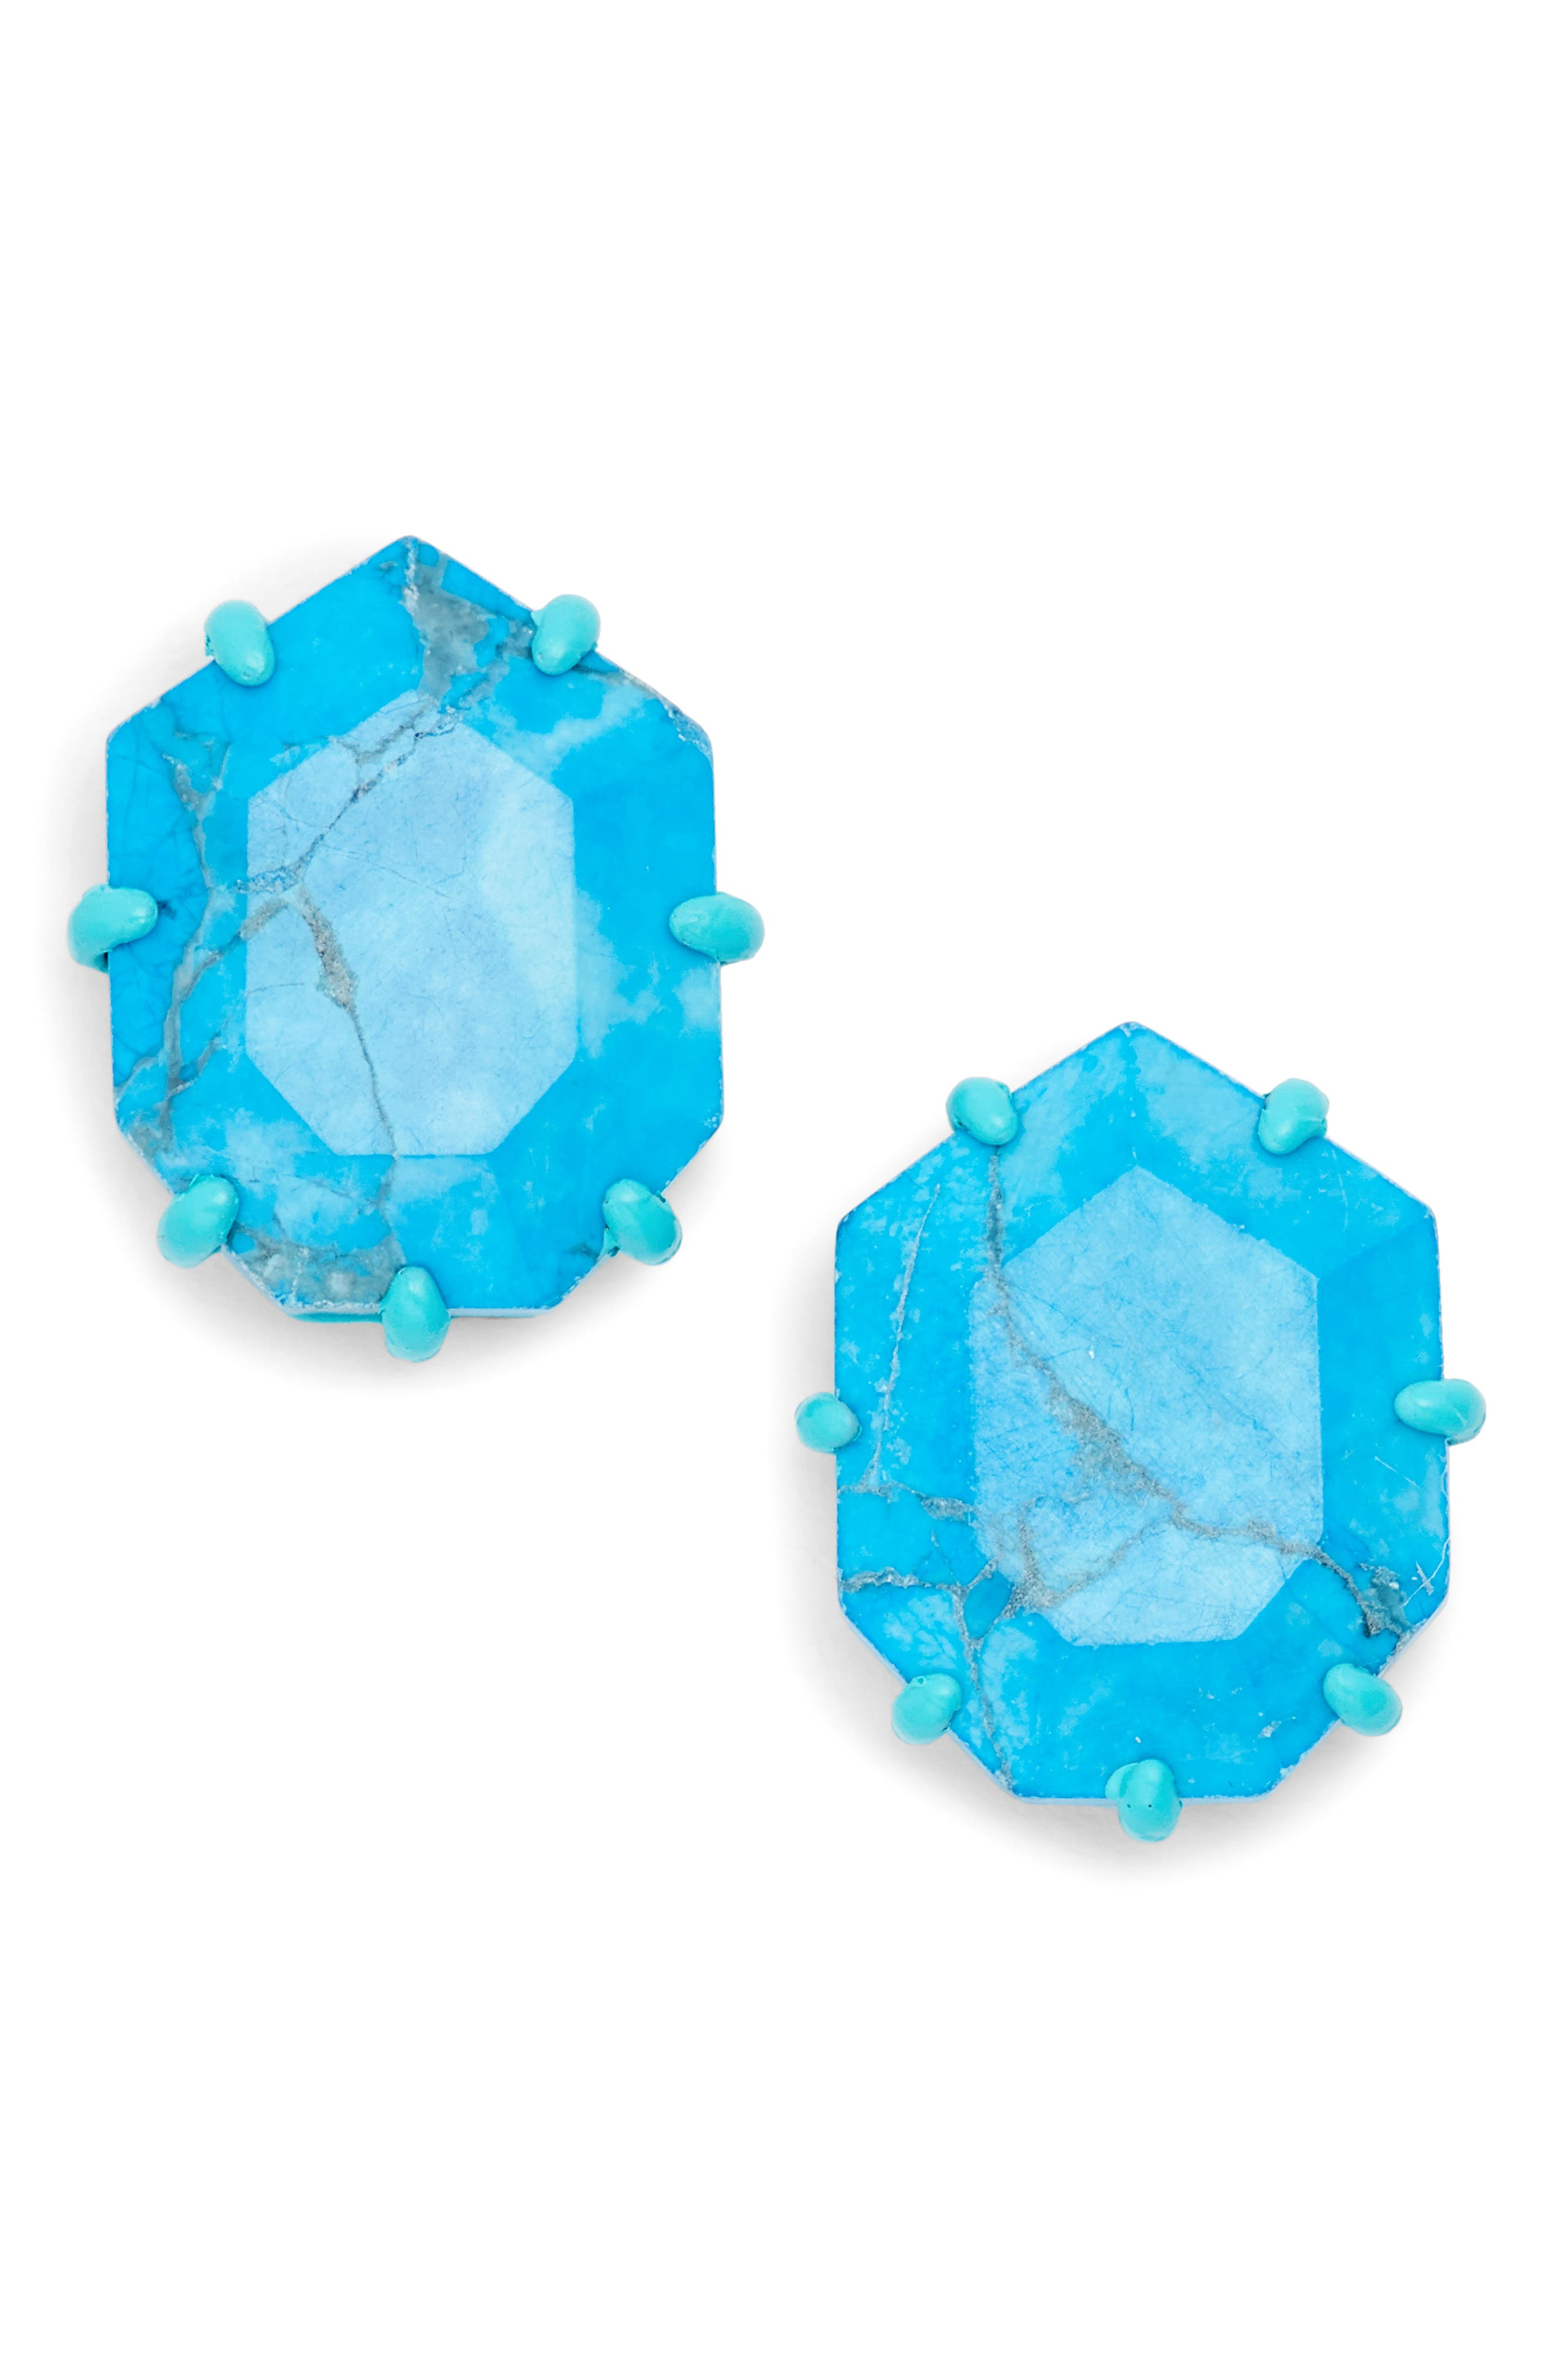 Kendra Scott Morgan Stud Earrings